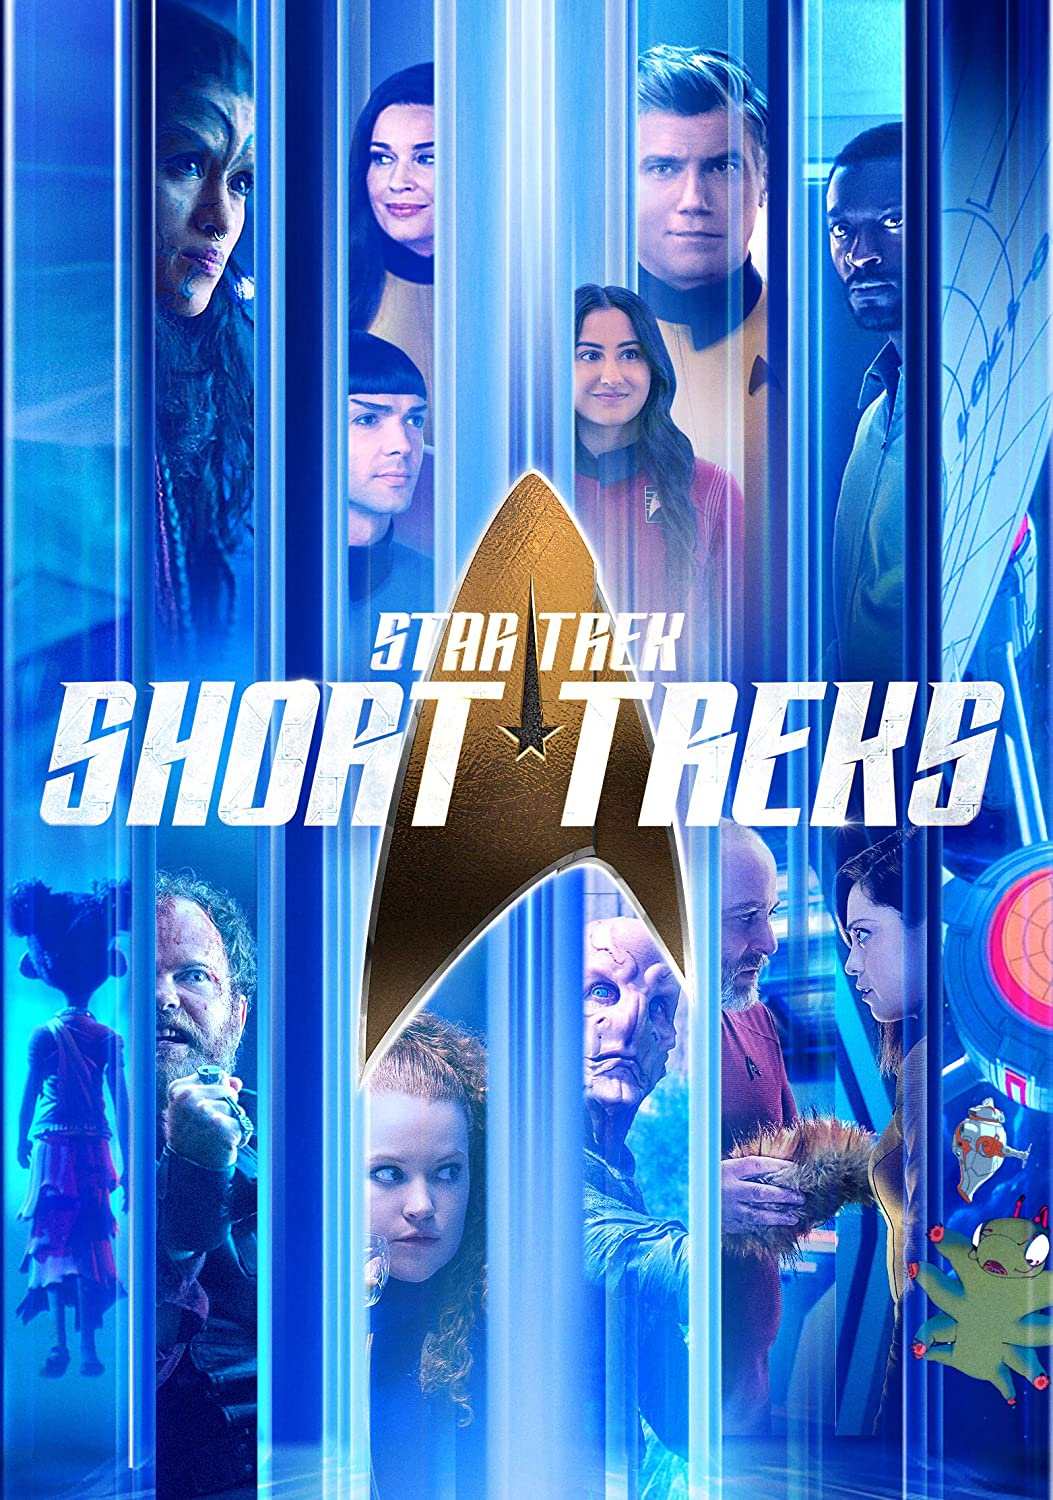 Star Trek: Short Treks kapak